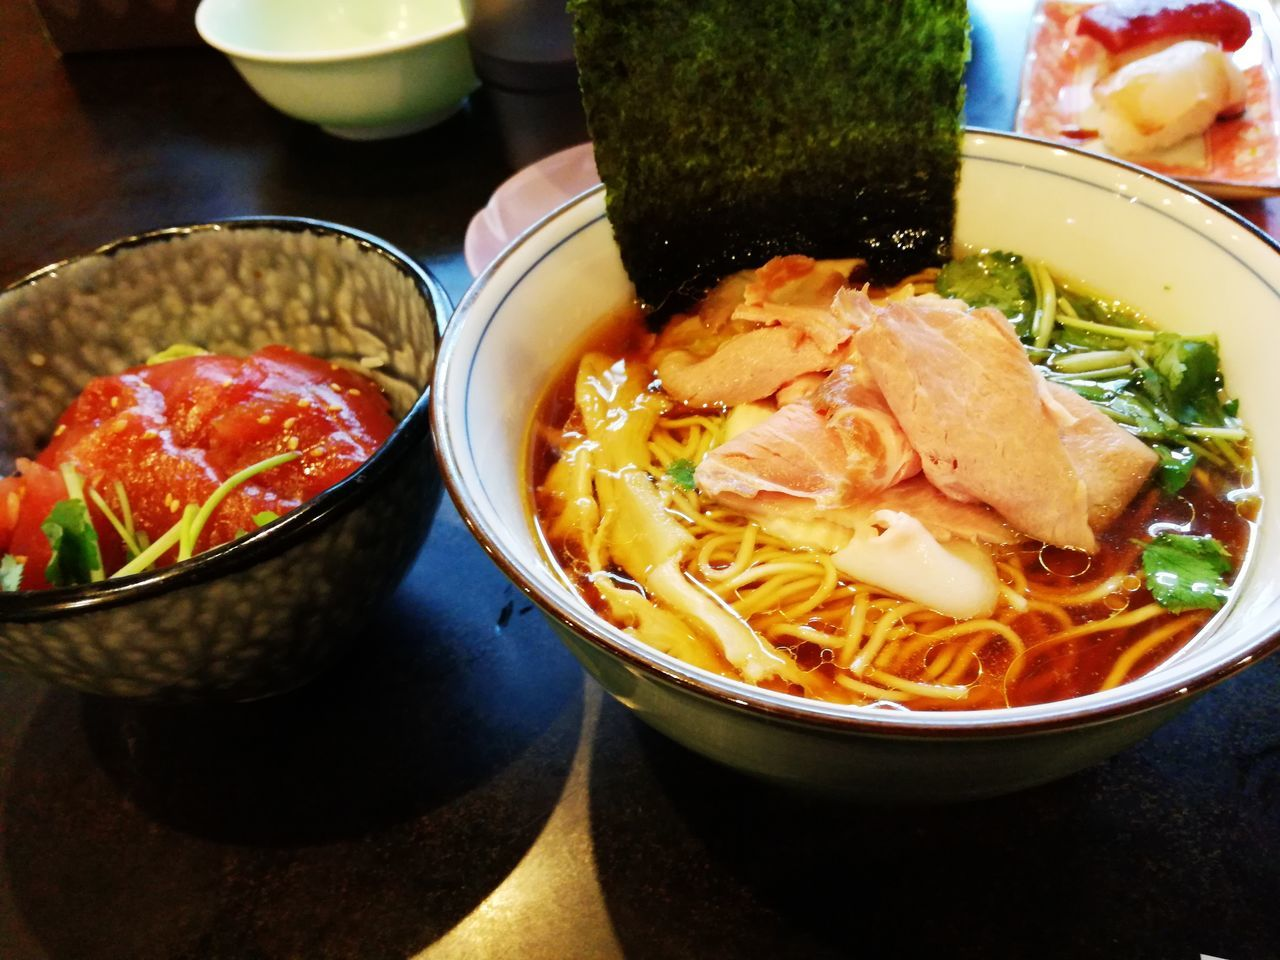 Food And Drink Ready-to-eat Freshness Bowl Indoors  Food Healthy Eating Soup Vegetable Meat No People Savory Food Stew Serving Size Homemade Close-up Noodle Soup Japaneasefood ラーメン Noodles 蛤ラーメンという変わり種も~